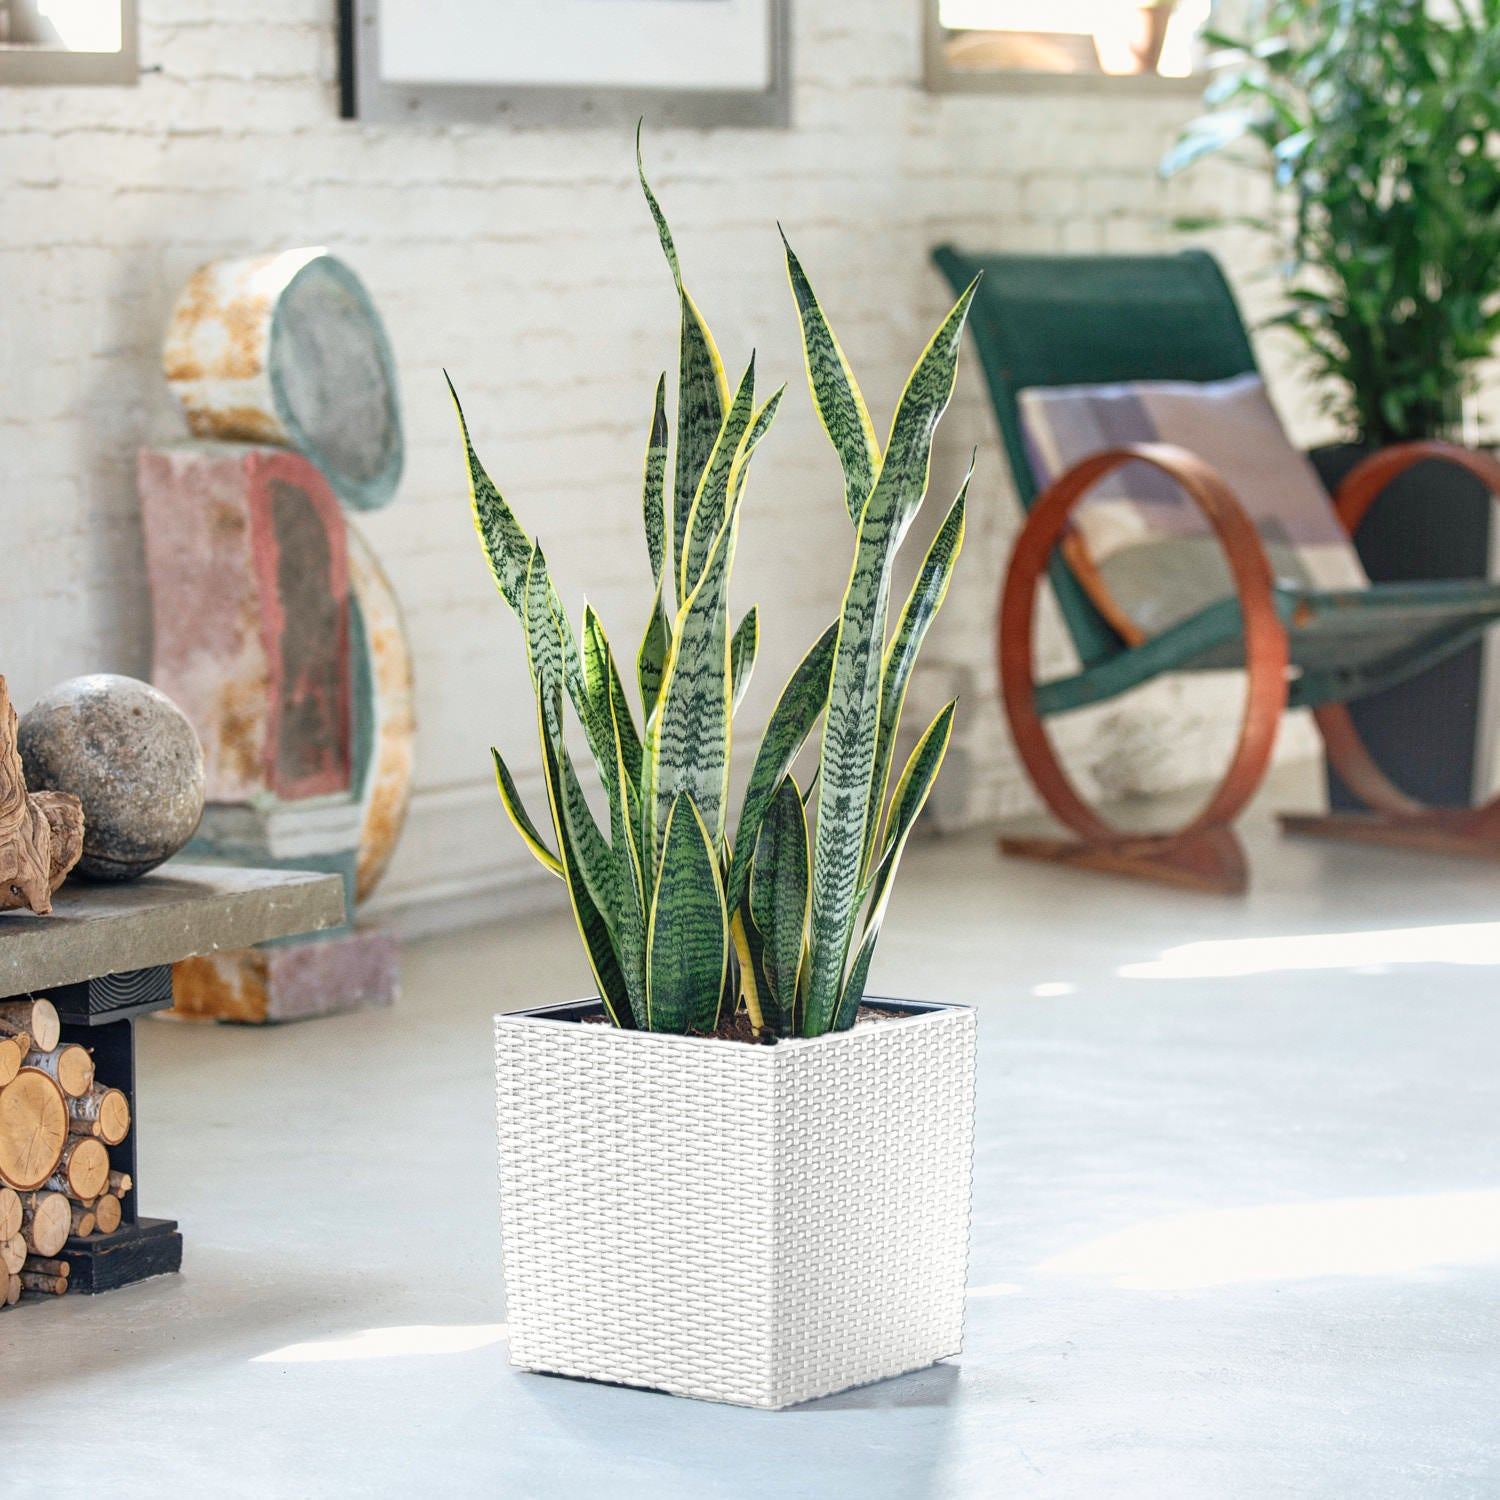 Sansevieria In Lechuza Cubico Cottage White Planter | My City Plants